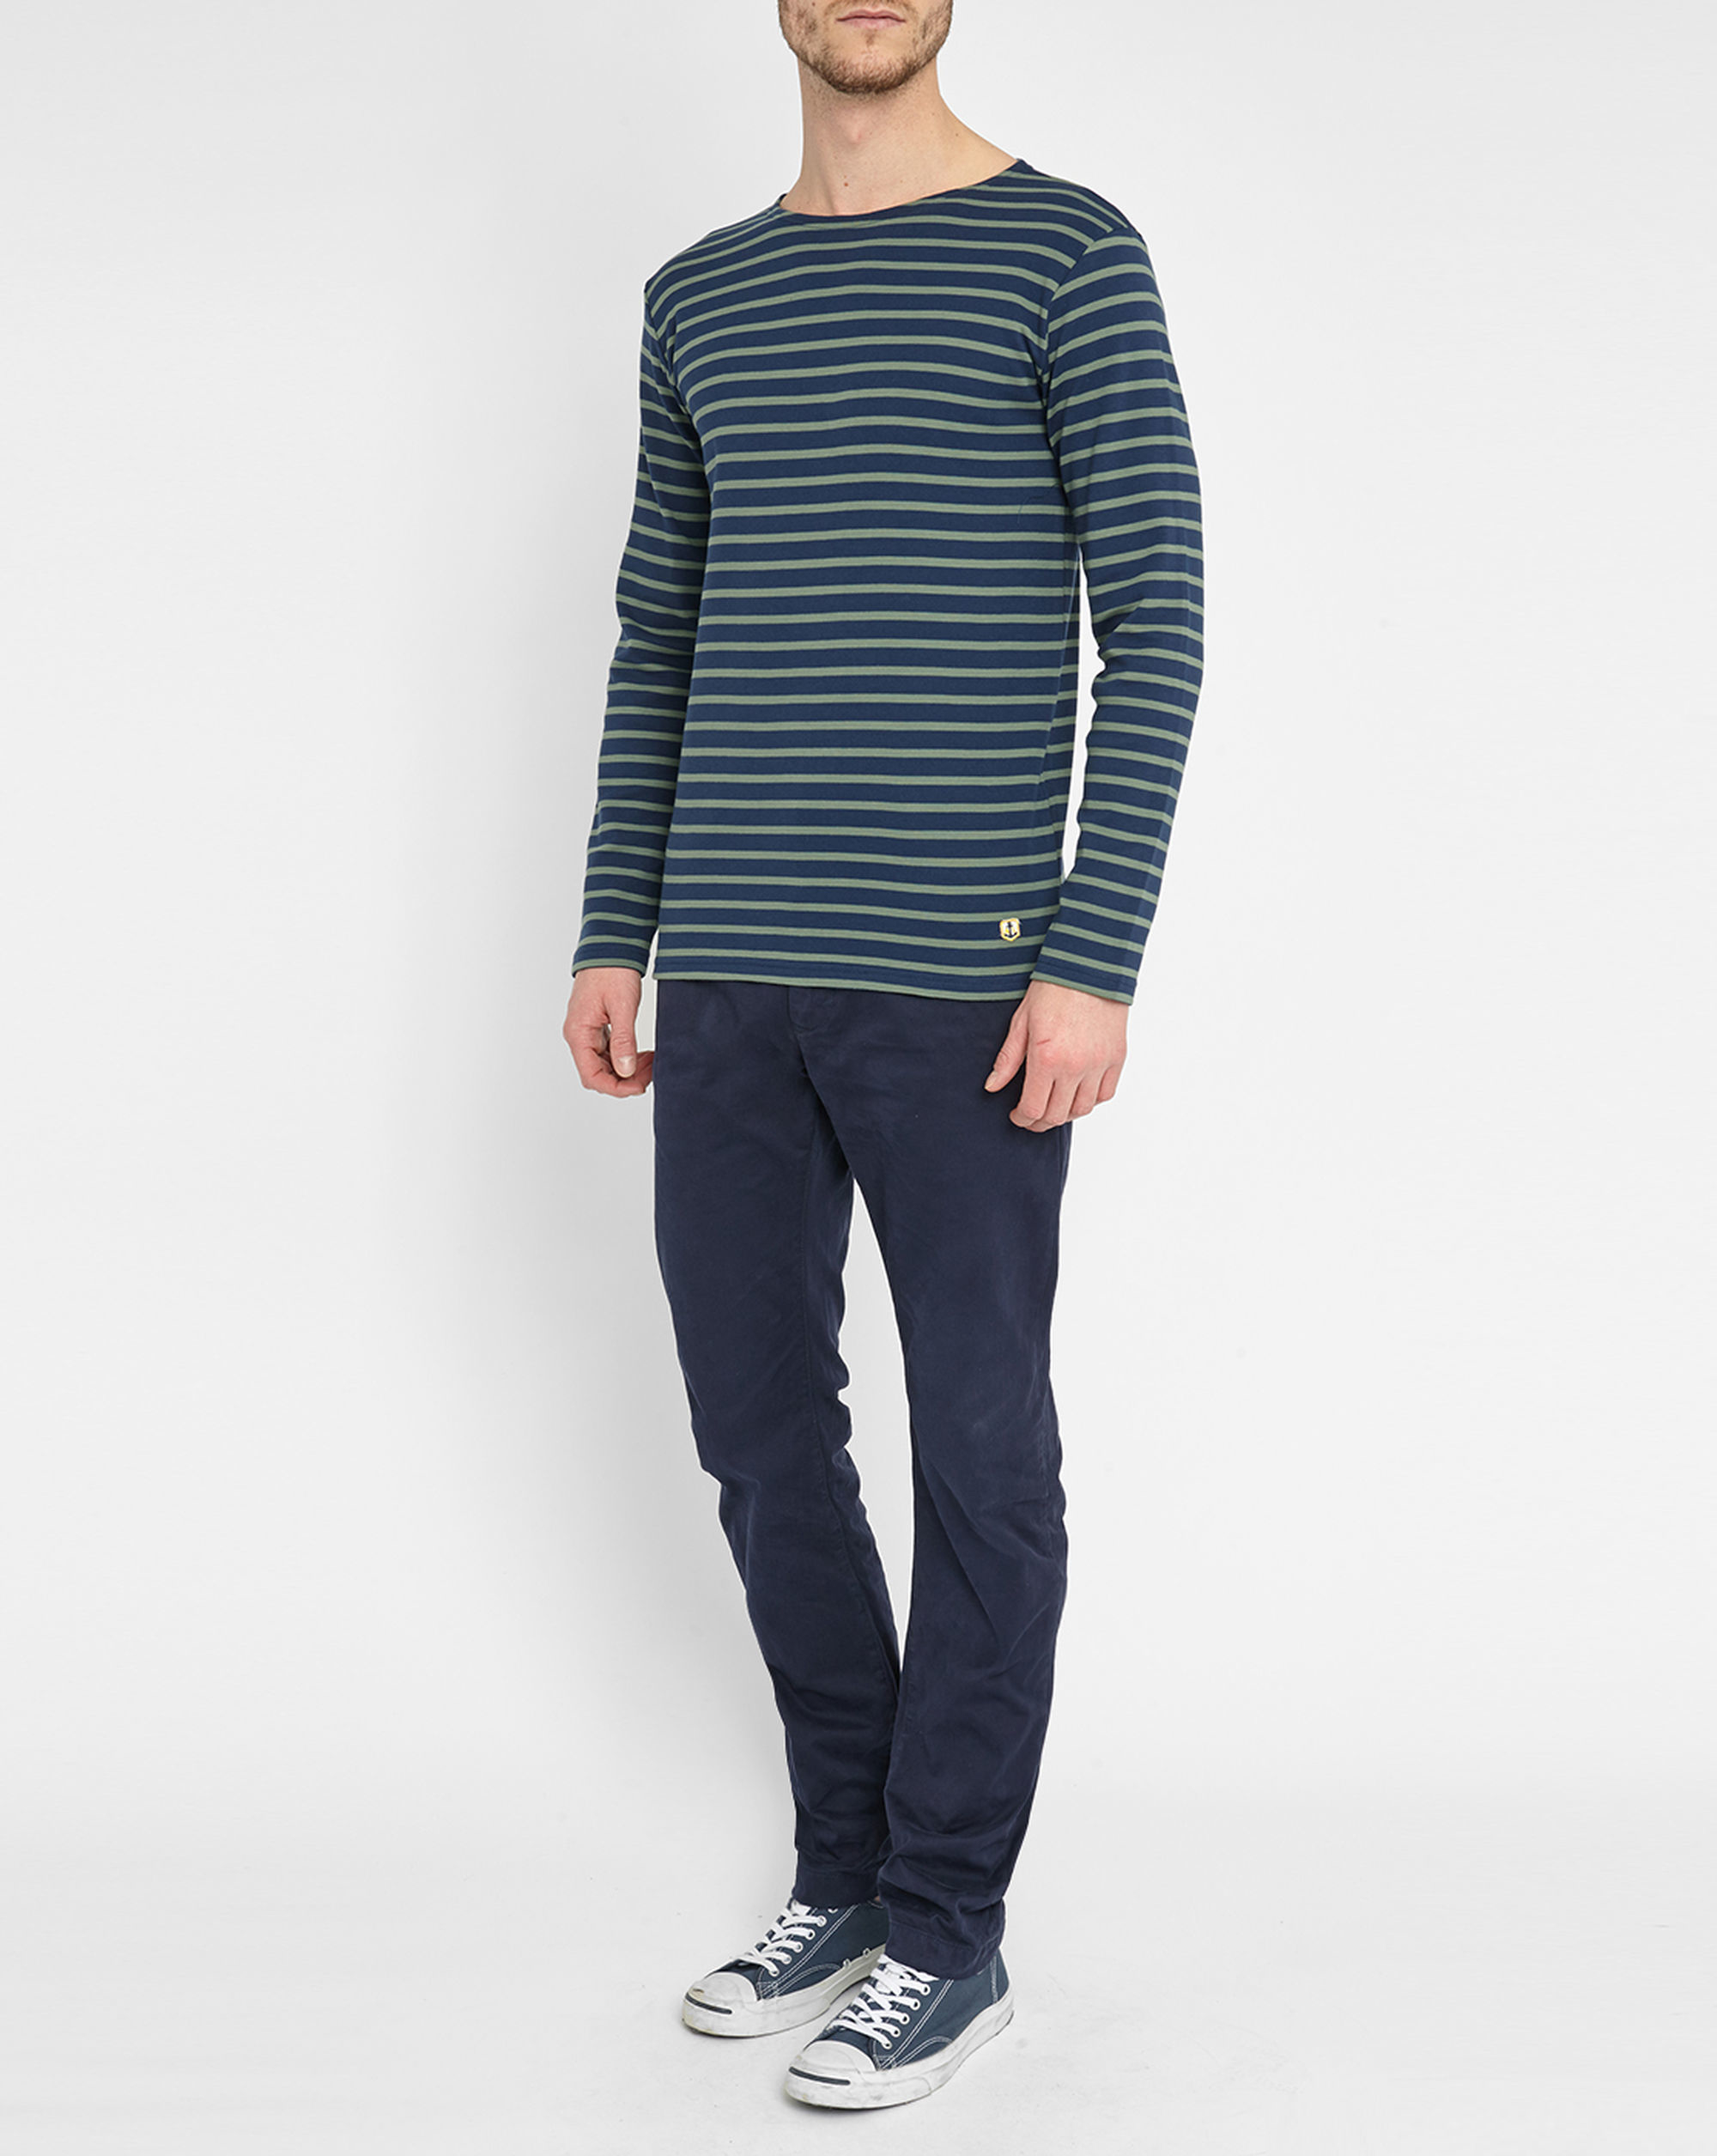 Armor lux Navy/green Classic Sailor Stripe Top in Blue for ...